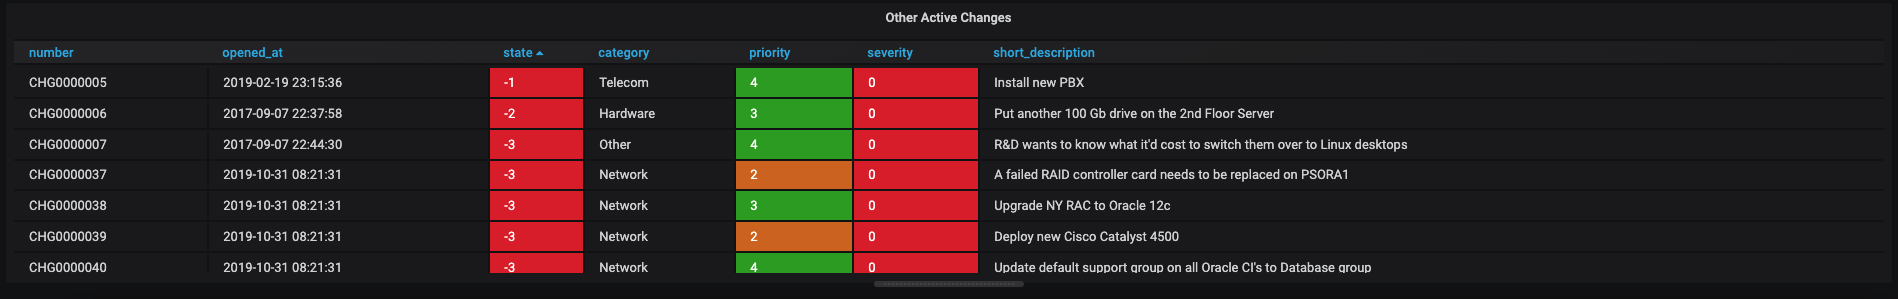 example change_request table result